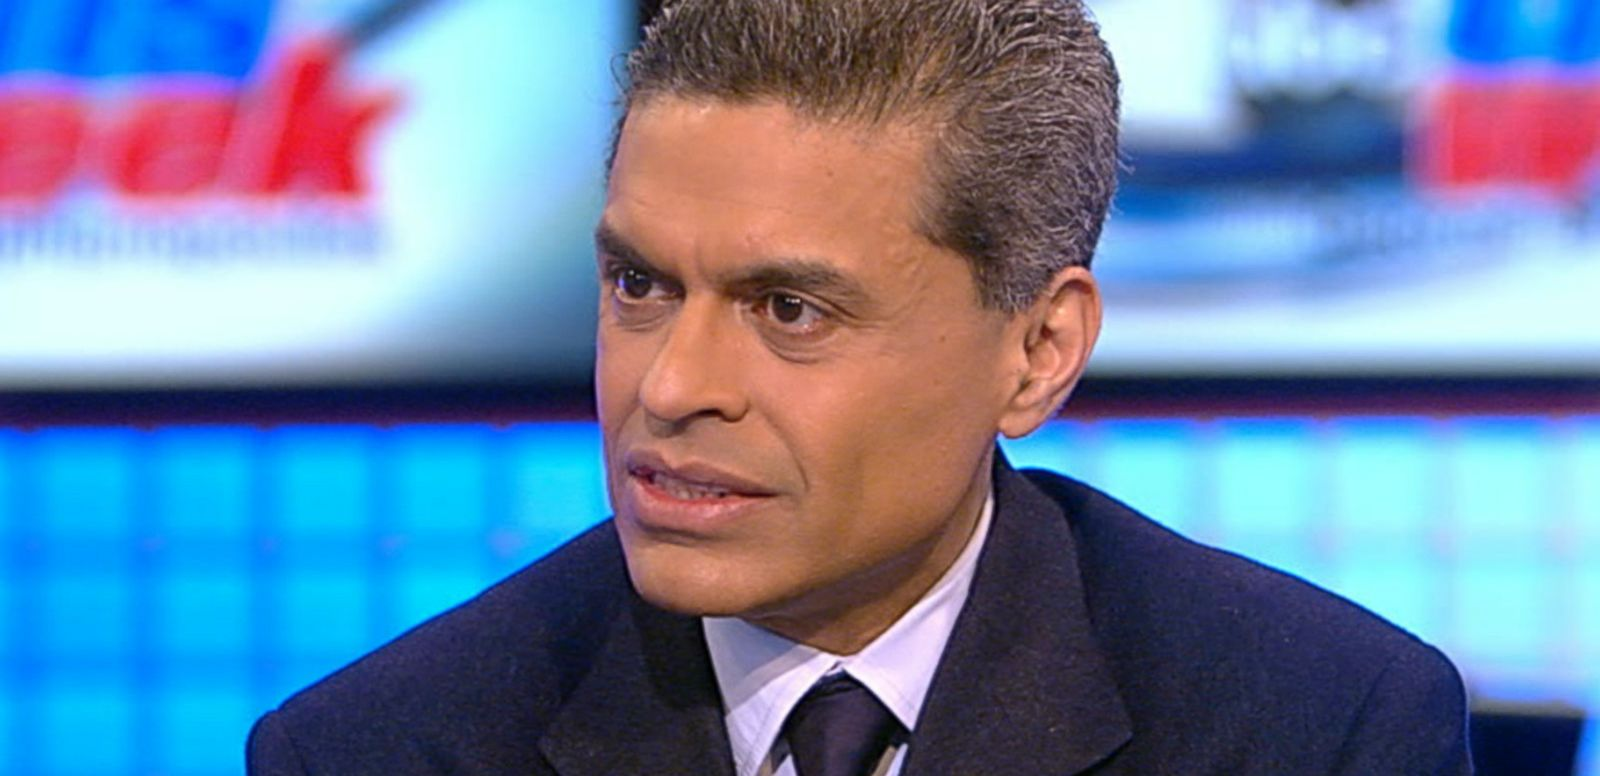 VIDEO: Fareed Zakaria Defends Liberal Arts Education